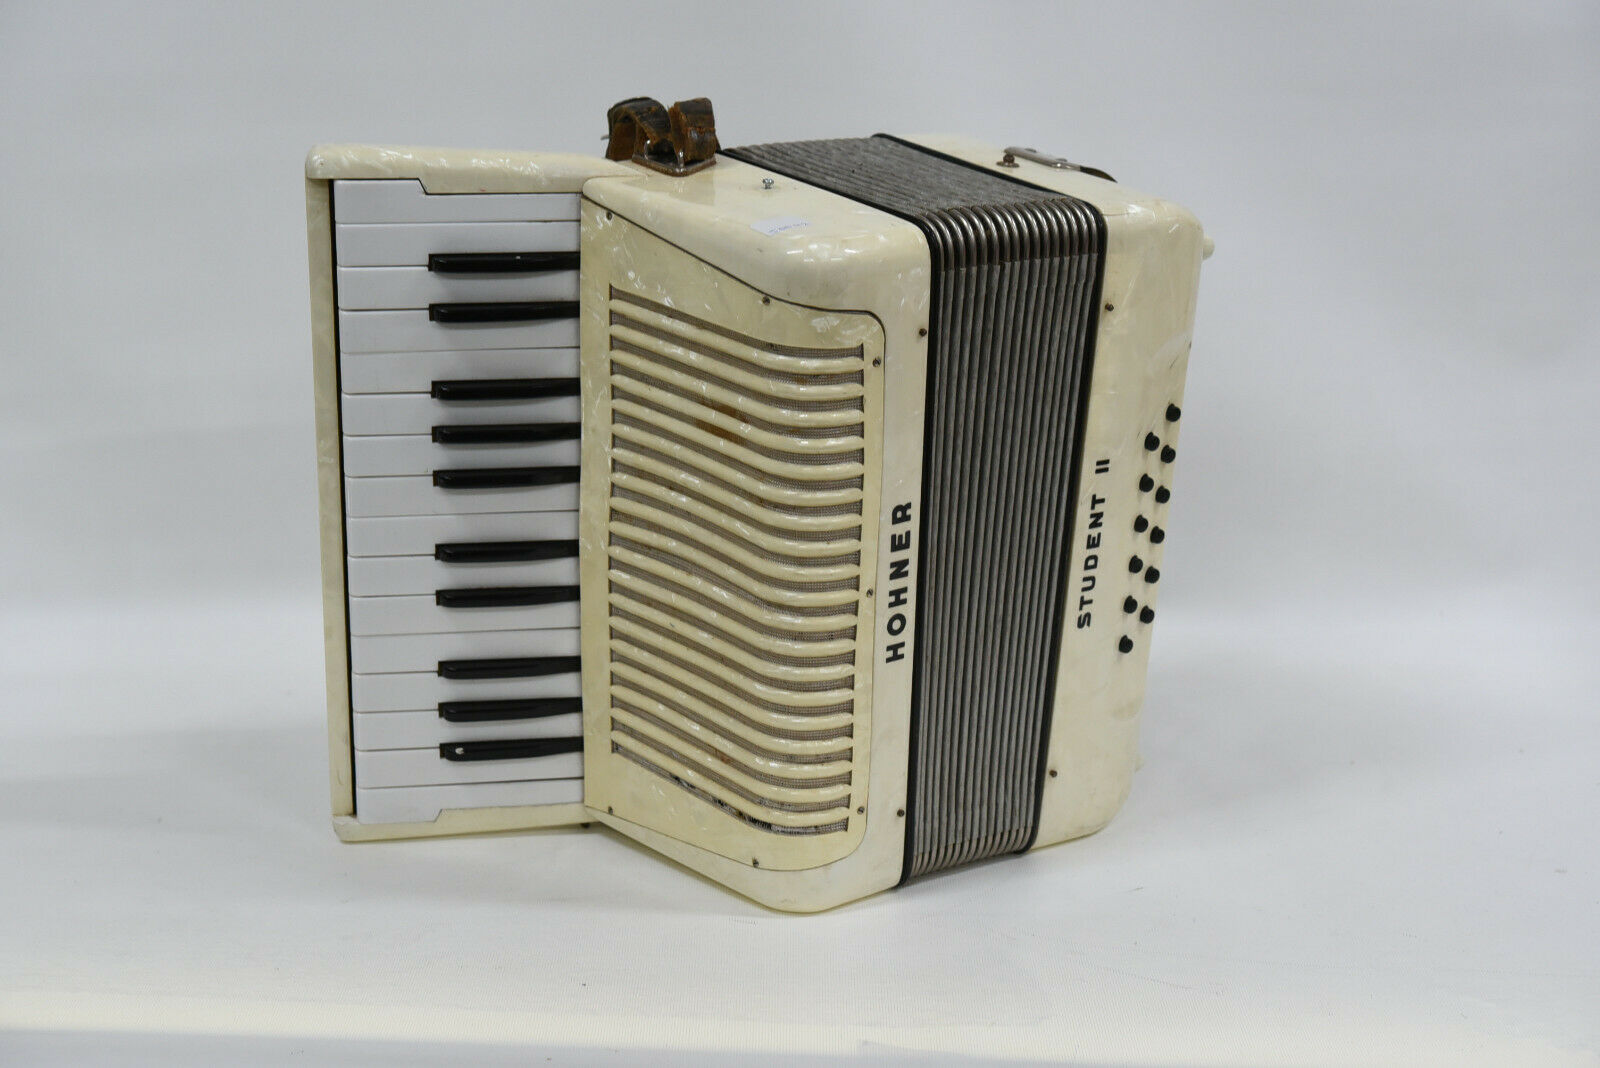 Hohner Student II (2) Vintage Piano Accordion - Pearl Weiß Colour